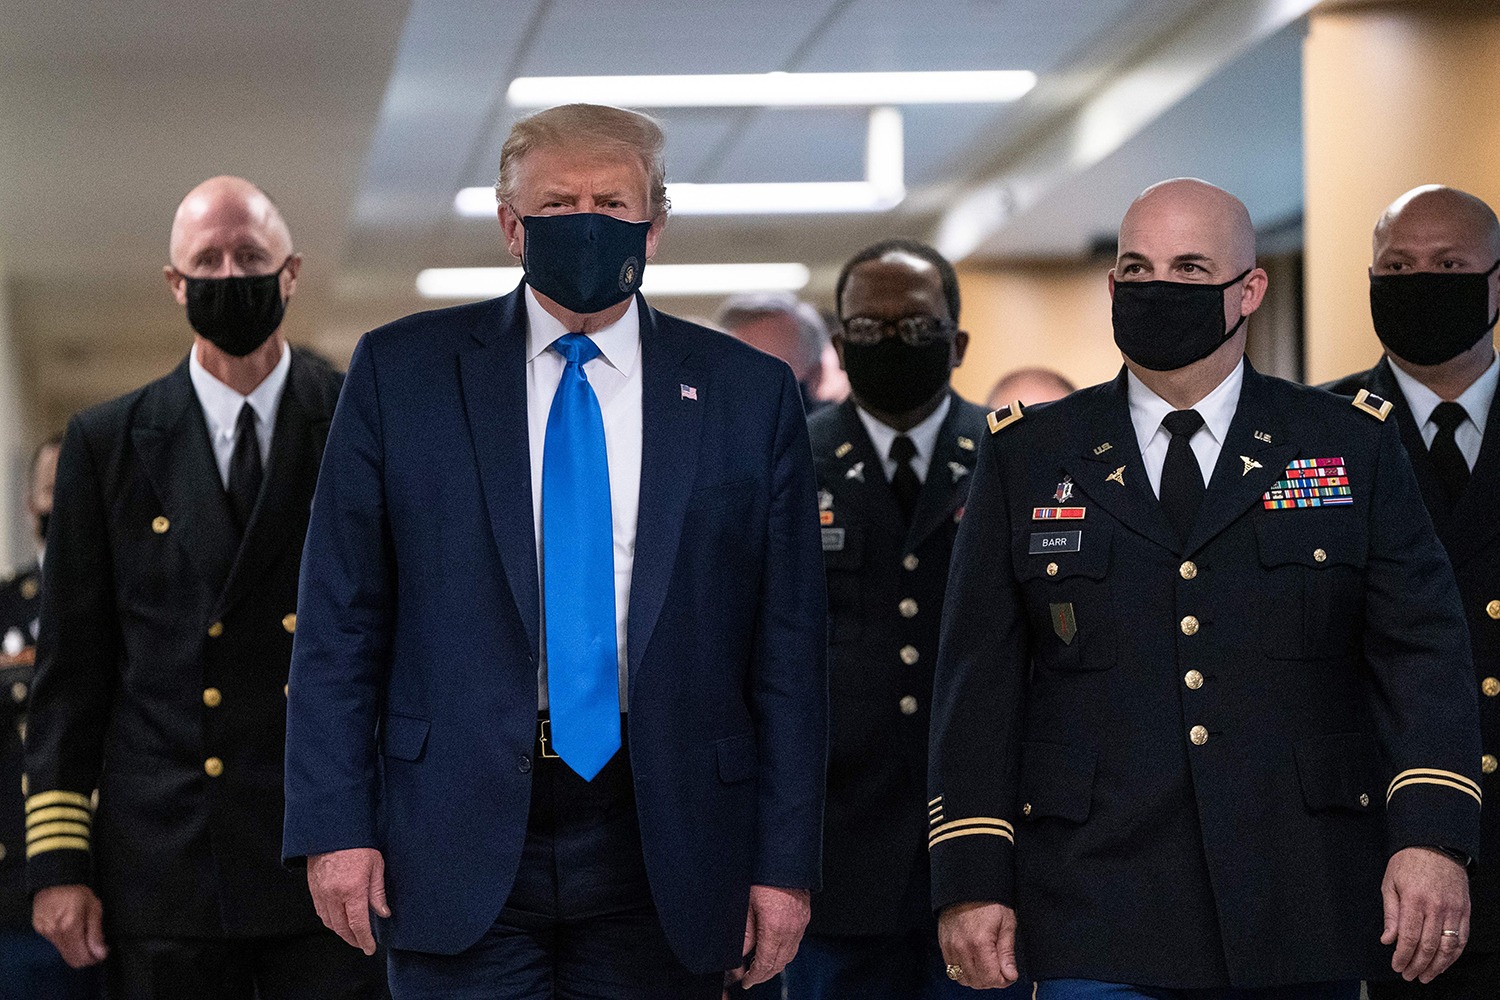 U.S. President Donald Trump wears a mask as he visits Walter Reed National Military Medical Center in Bethesda, Maryland, on July 11. ALEX EDELMAN/AFP via Getty Images